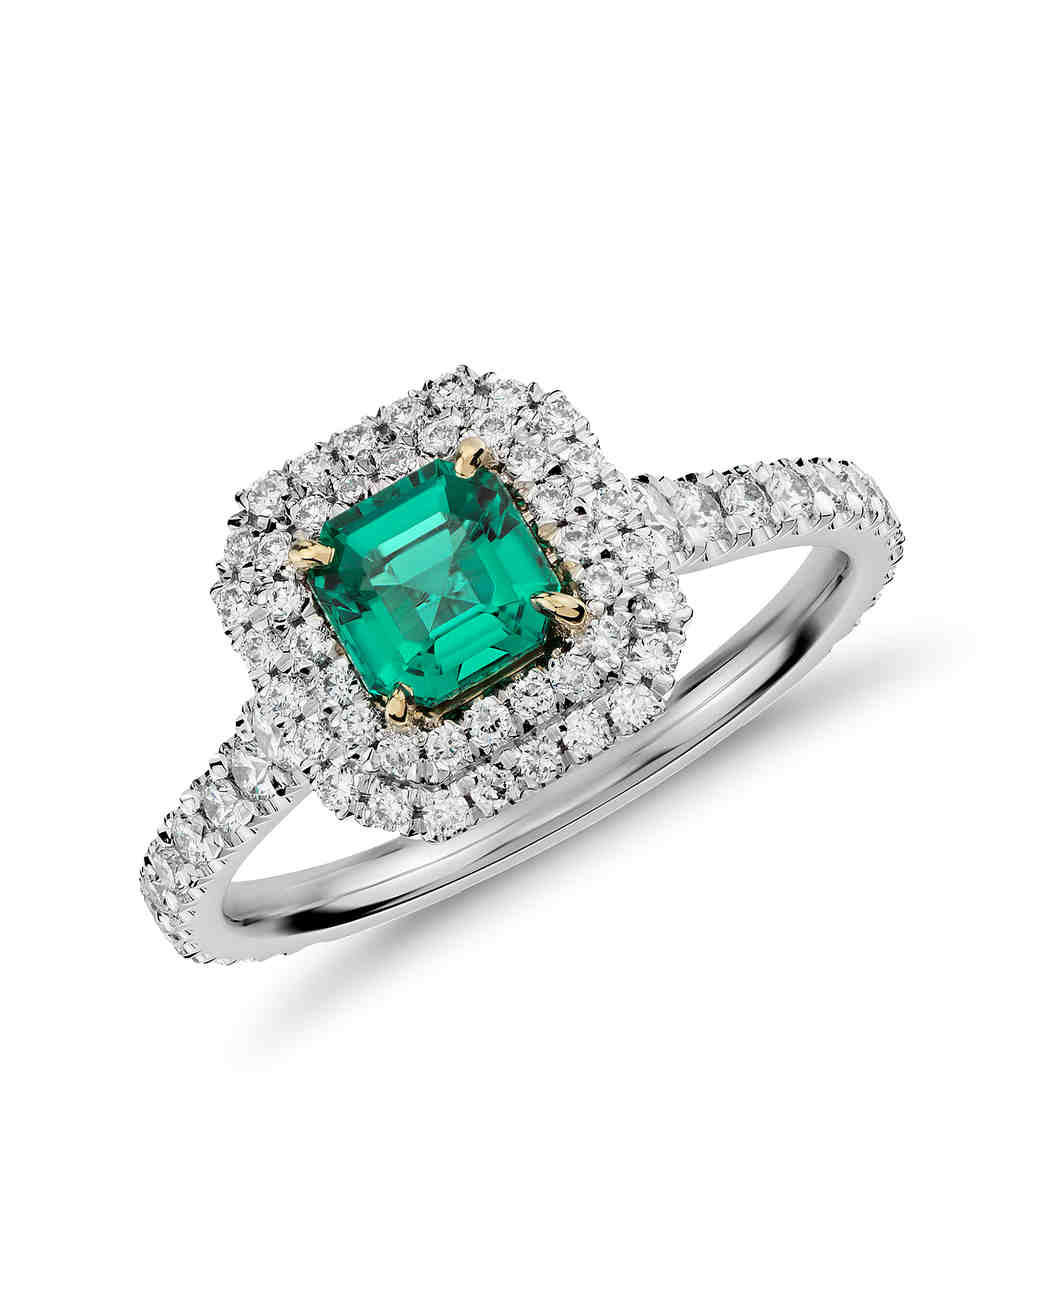 Emerald And Micropavé Diamond Engagement Ring